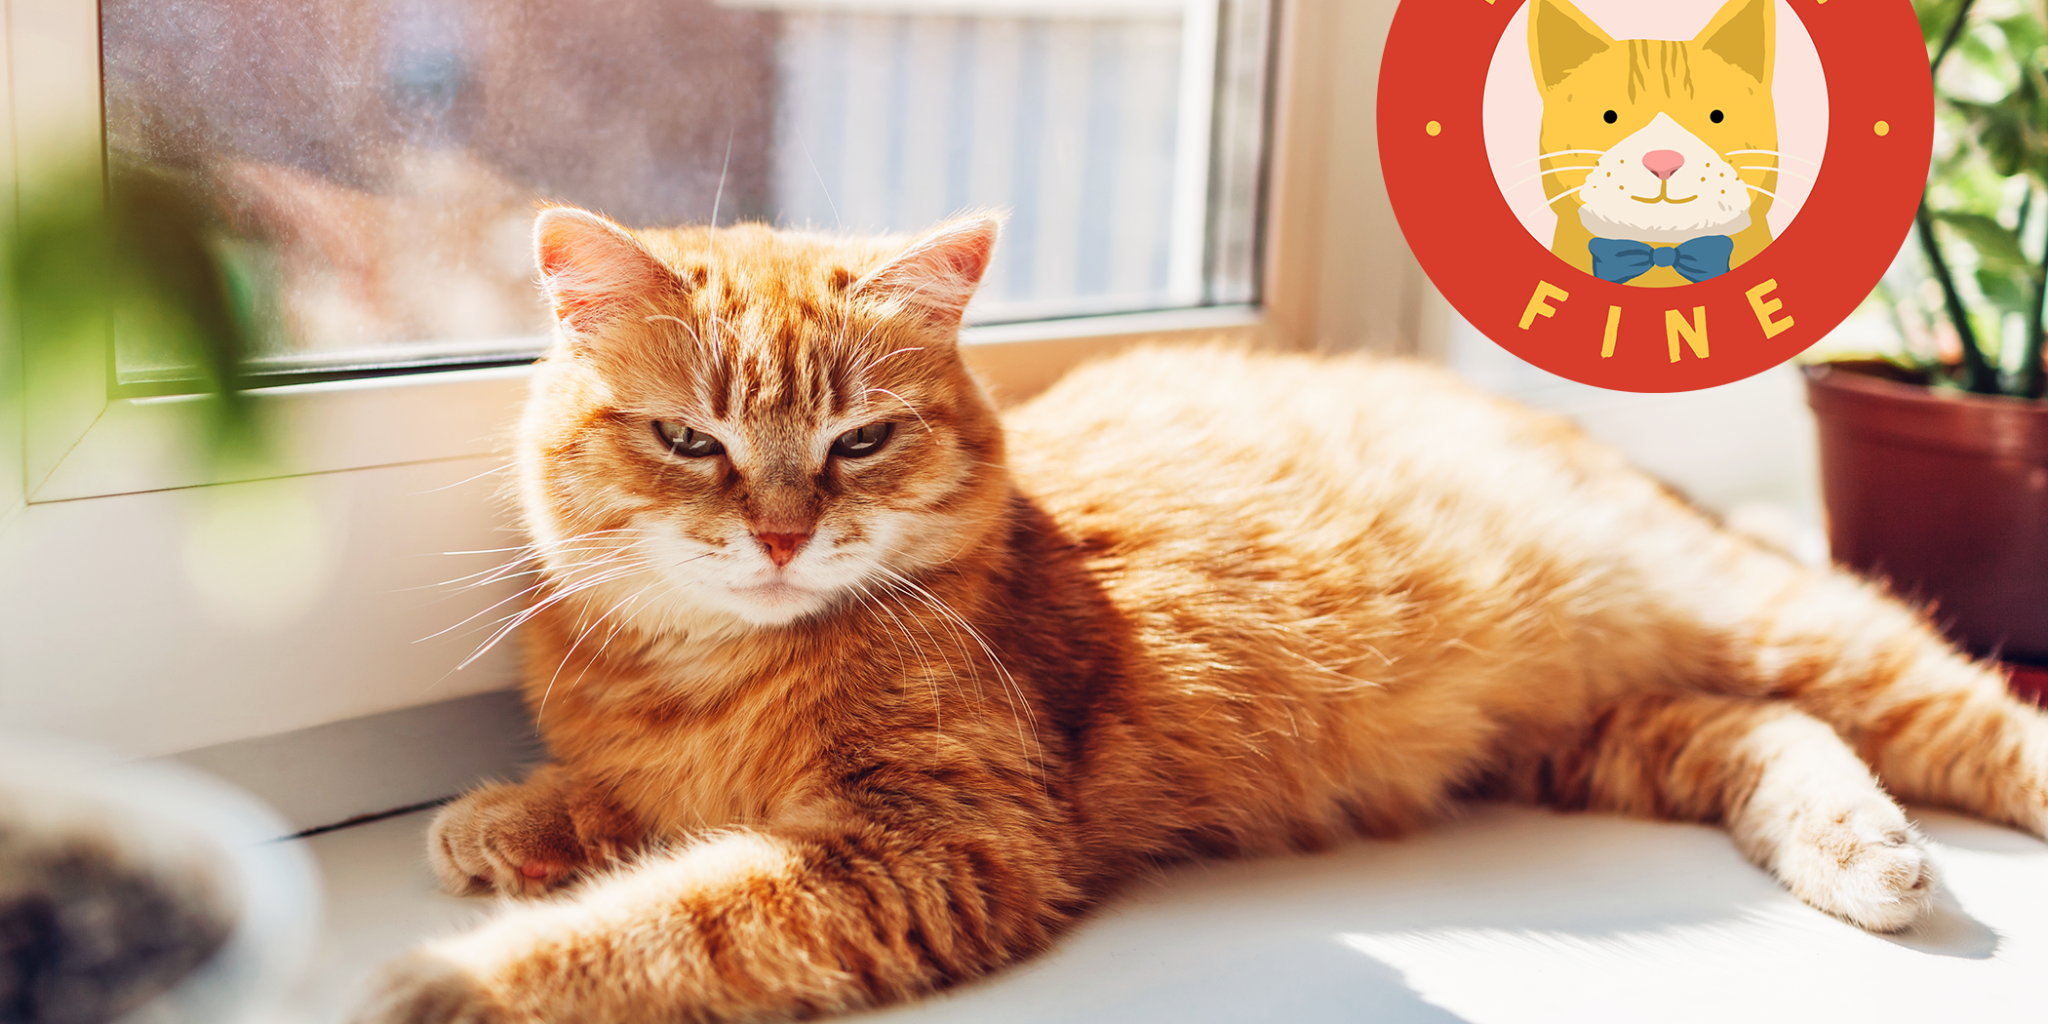 How to Protect Your Cat From Getting a Sunburn